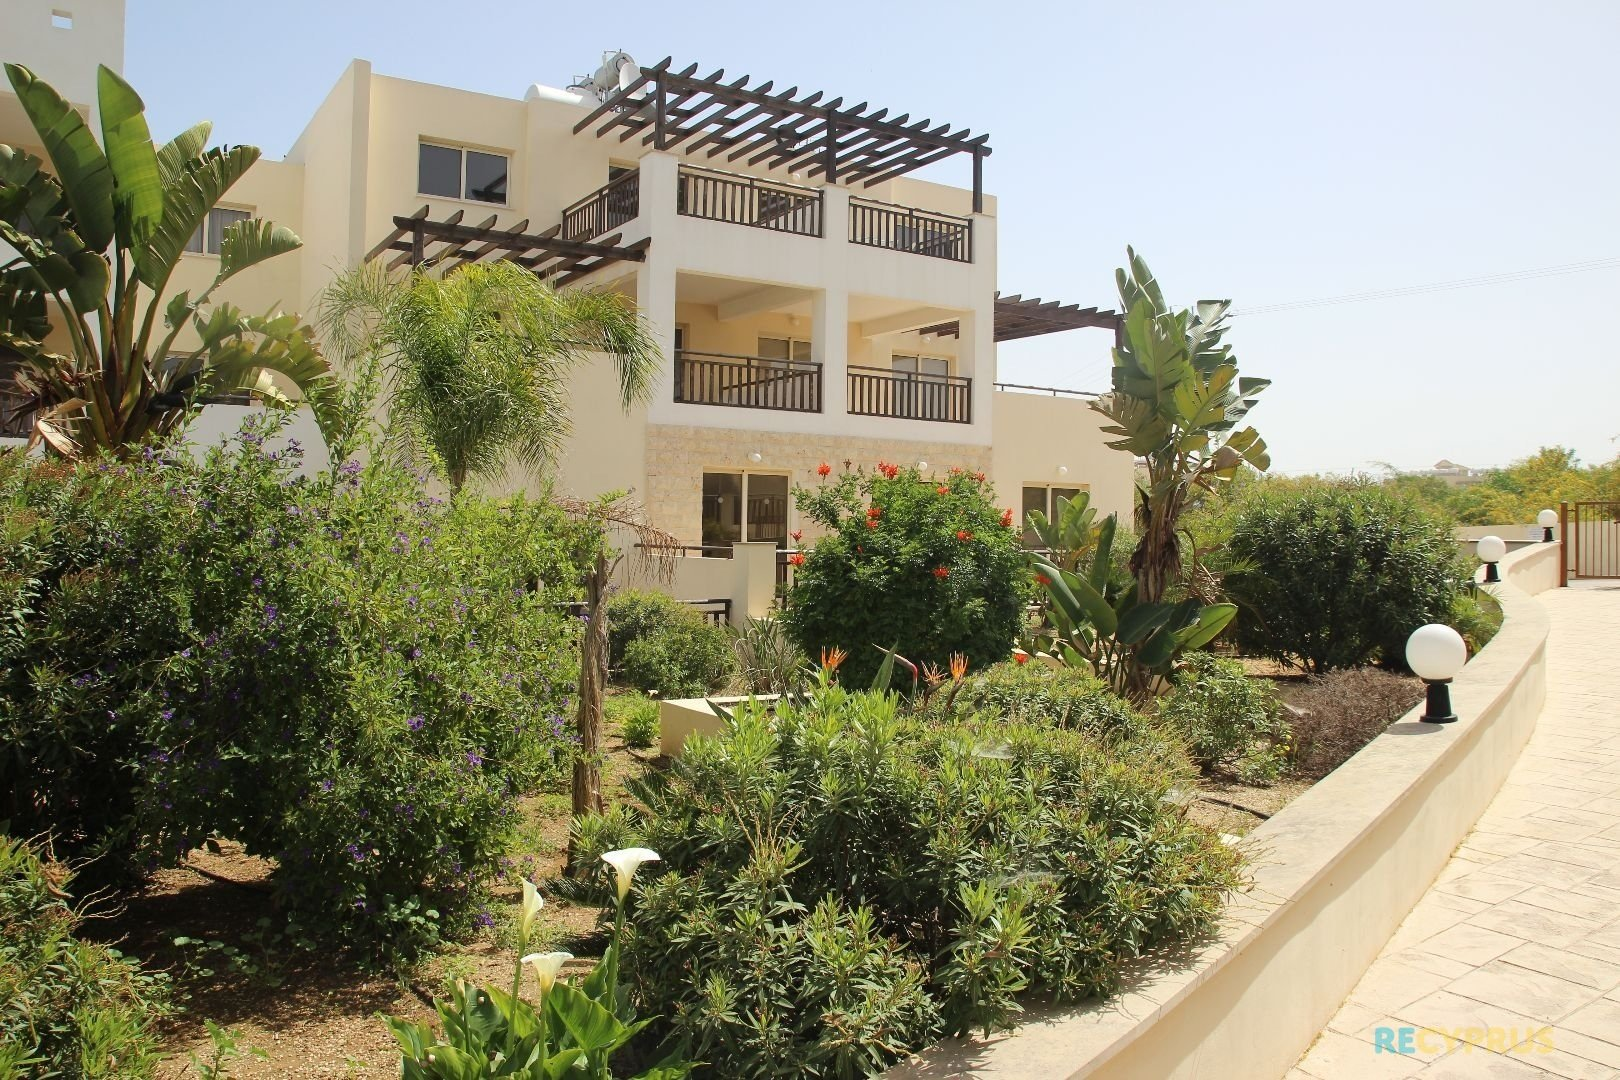 Apartment for sale Kapparis Famagusta Cyprus 10 3560